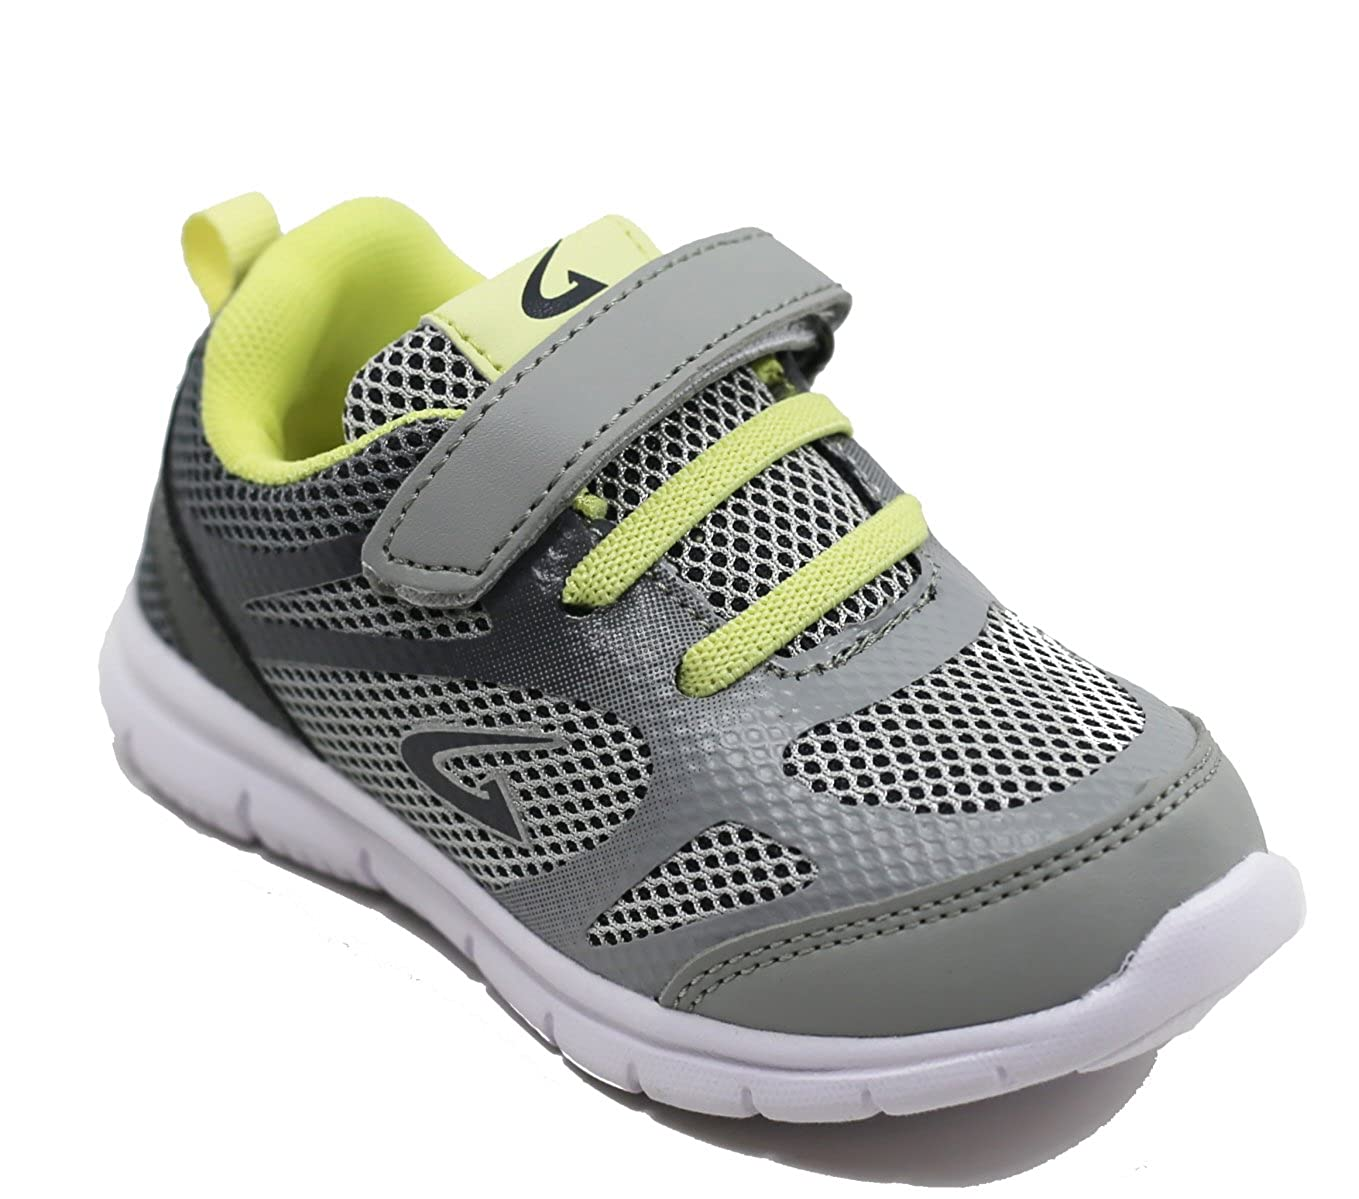 WALSTARUSA Walstar Boys Sneakers Athletic Strap Light Weight Running Shoes Toddler//Little Kid